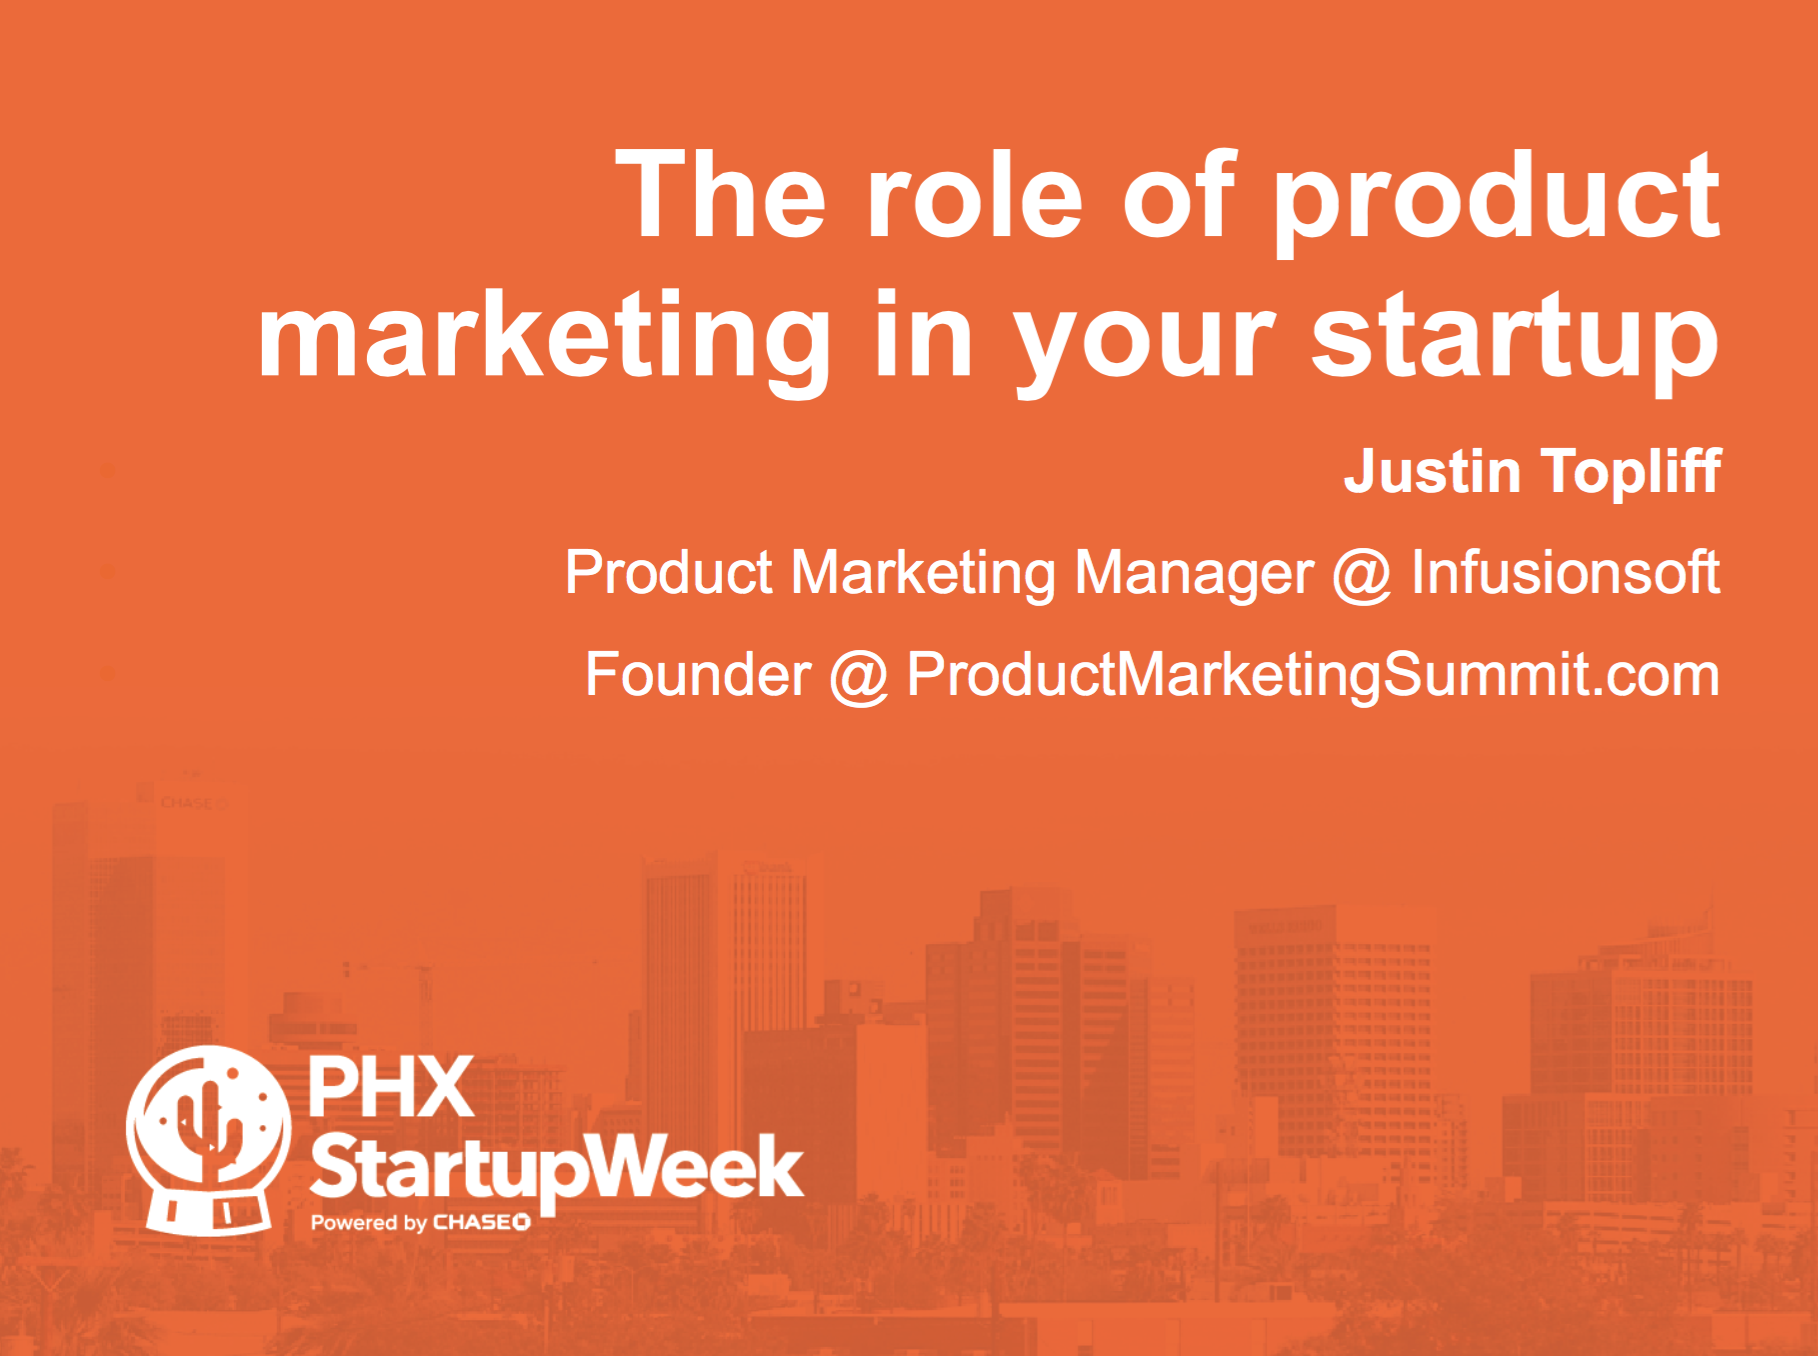 Justin Topliff Role of Product Marketing in your startup phx startup week 2016